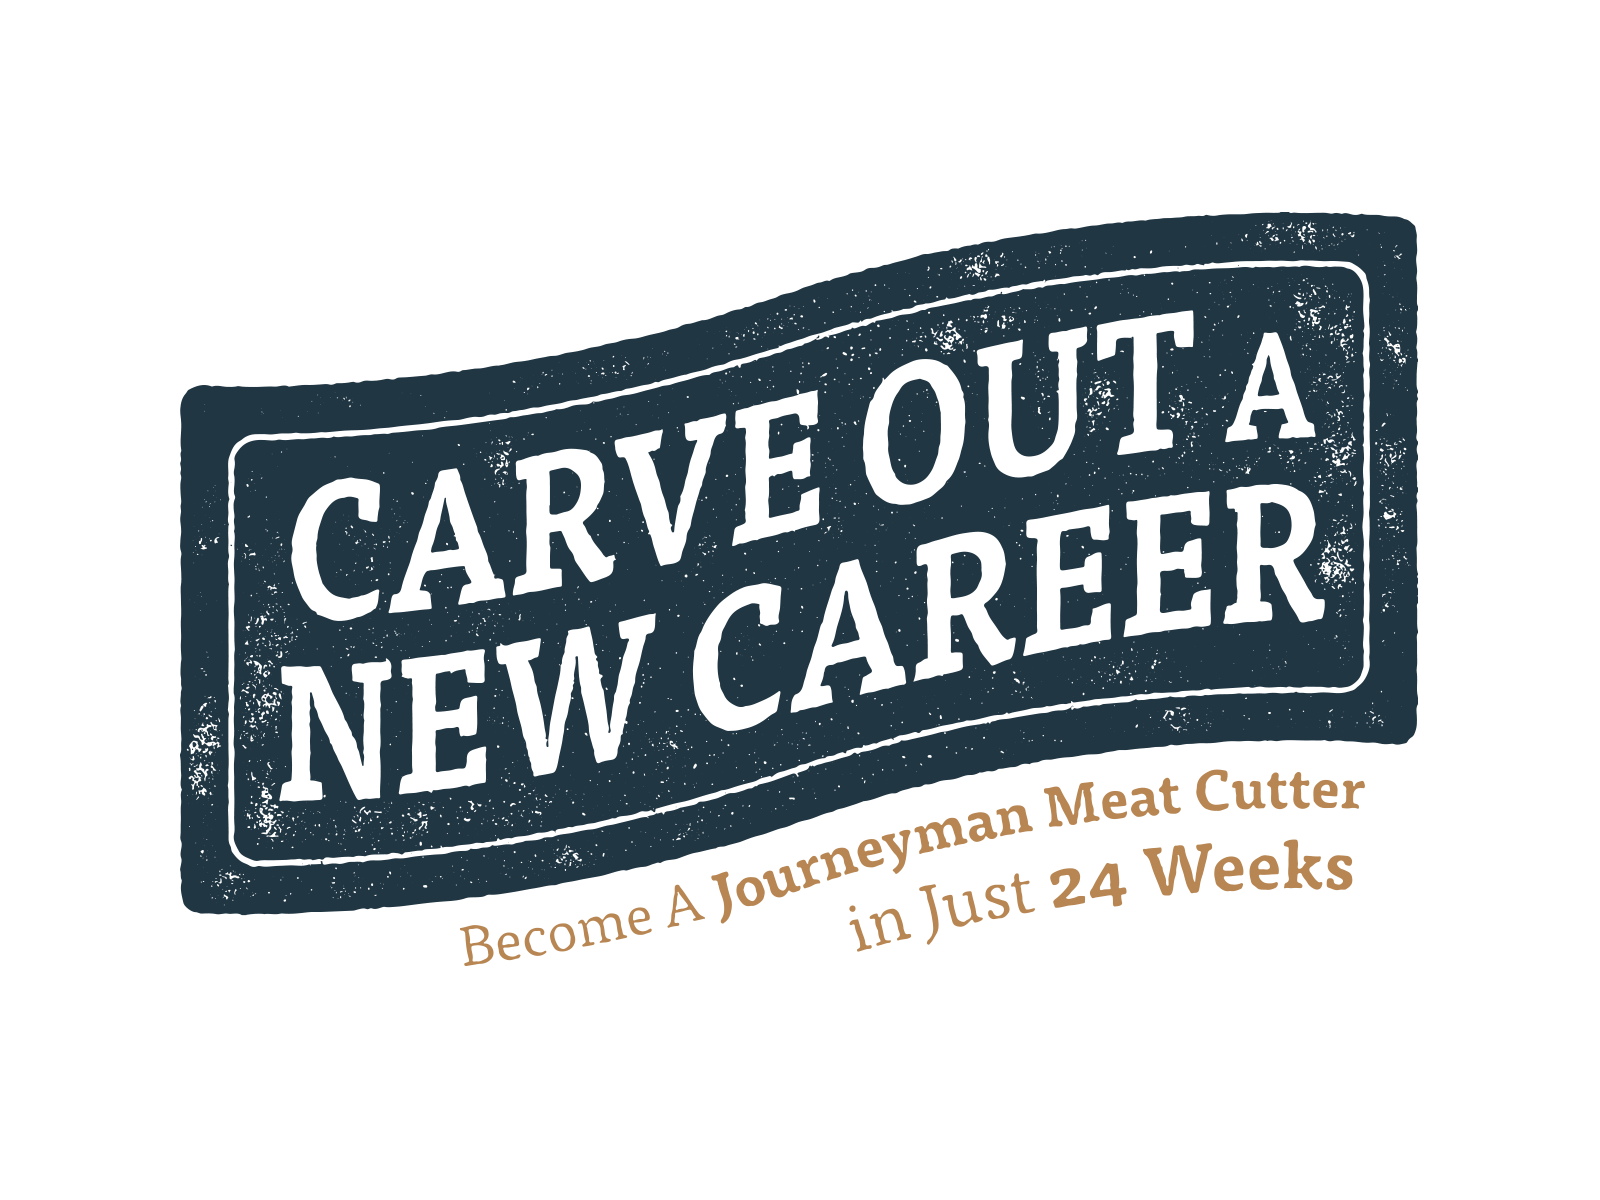 Giant-Eagle-Image-Meat-Cutter-Carve-A-Career